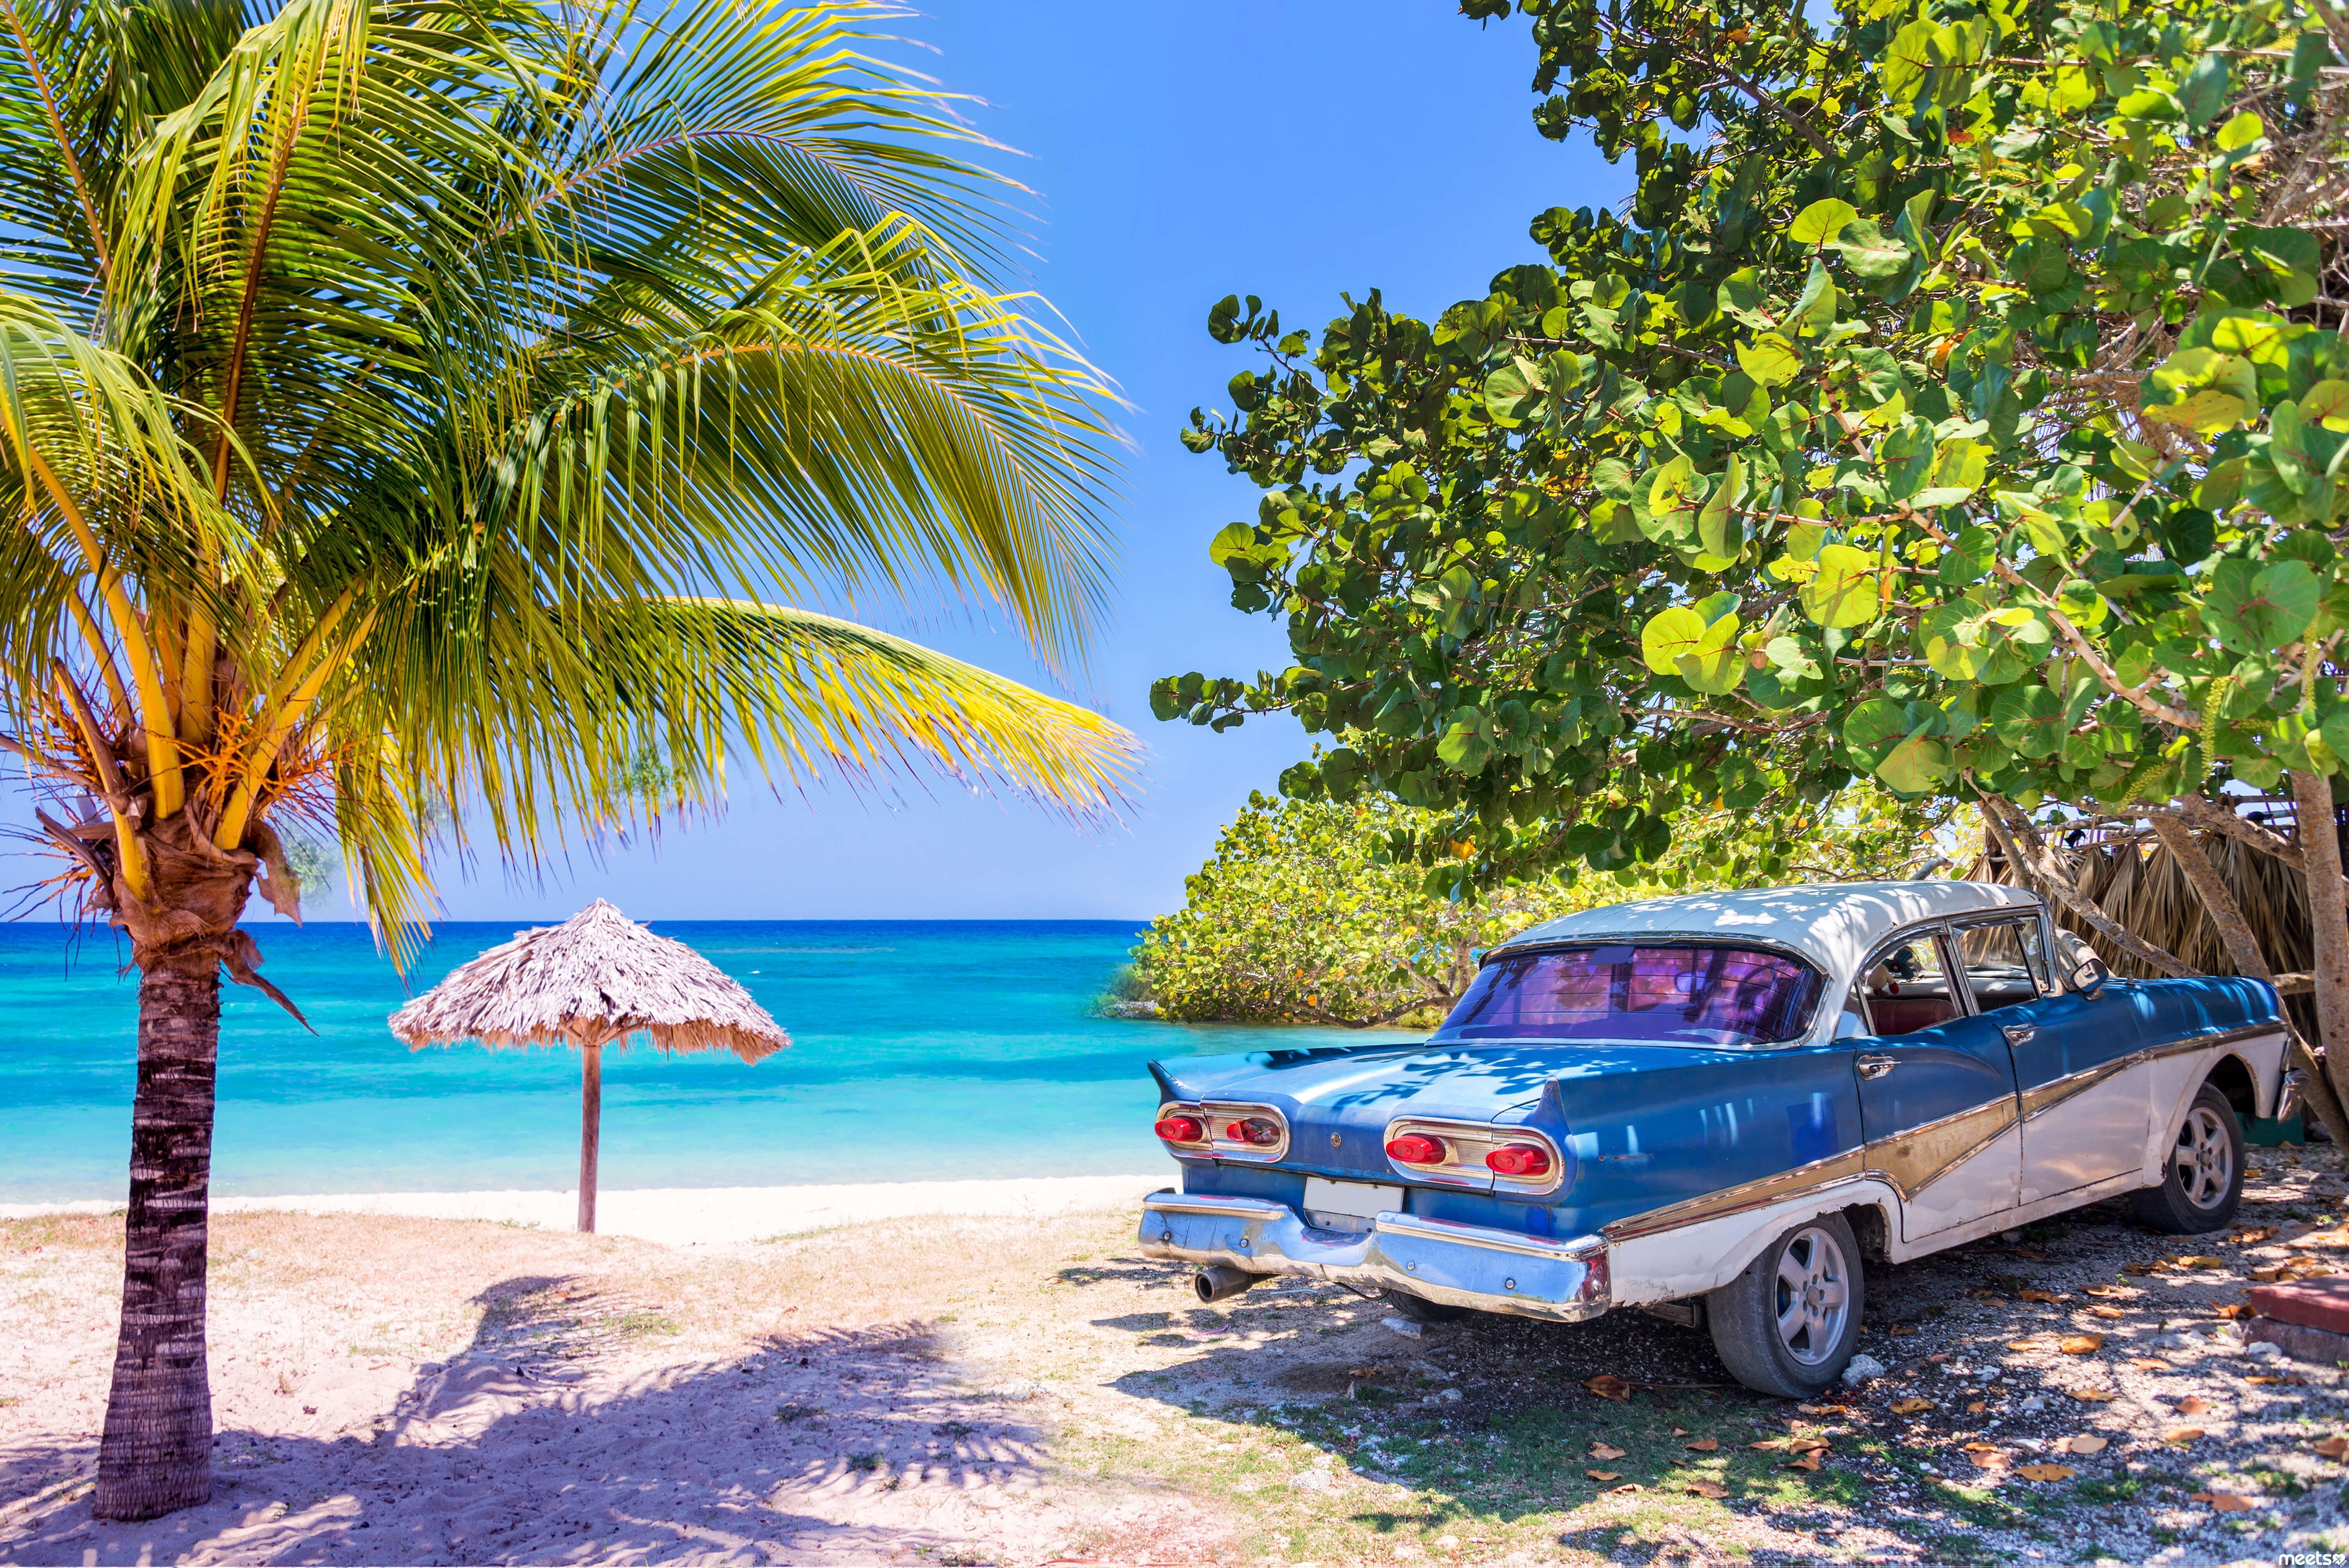 Take a trip to Cuba. A trip to the island La Isla de la Juventud (Day 1) #cubaisland Take a trip to Cuba. Trip to the island La Isla de la Juventud (Day 1) Travel with meets.com and have fun exploring the world with cute girls #meets #trip #Cuba #island #cubaisland